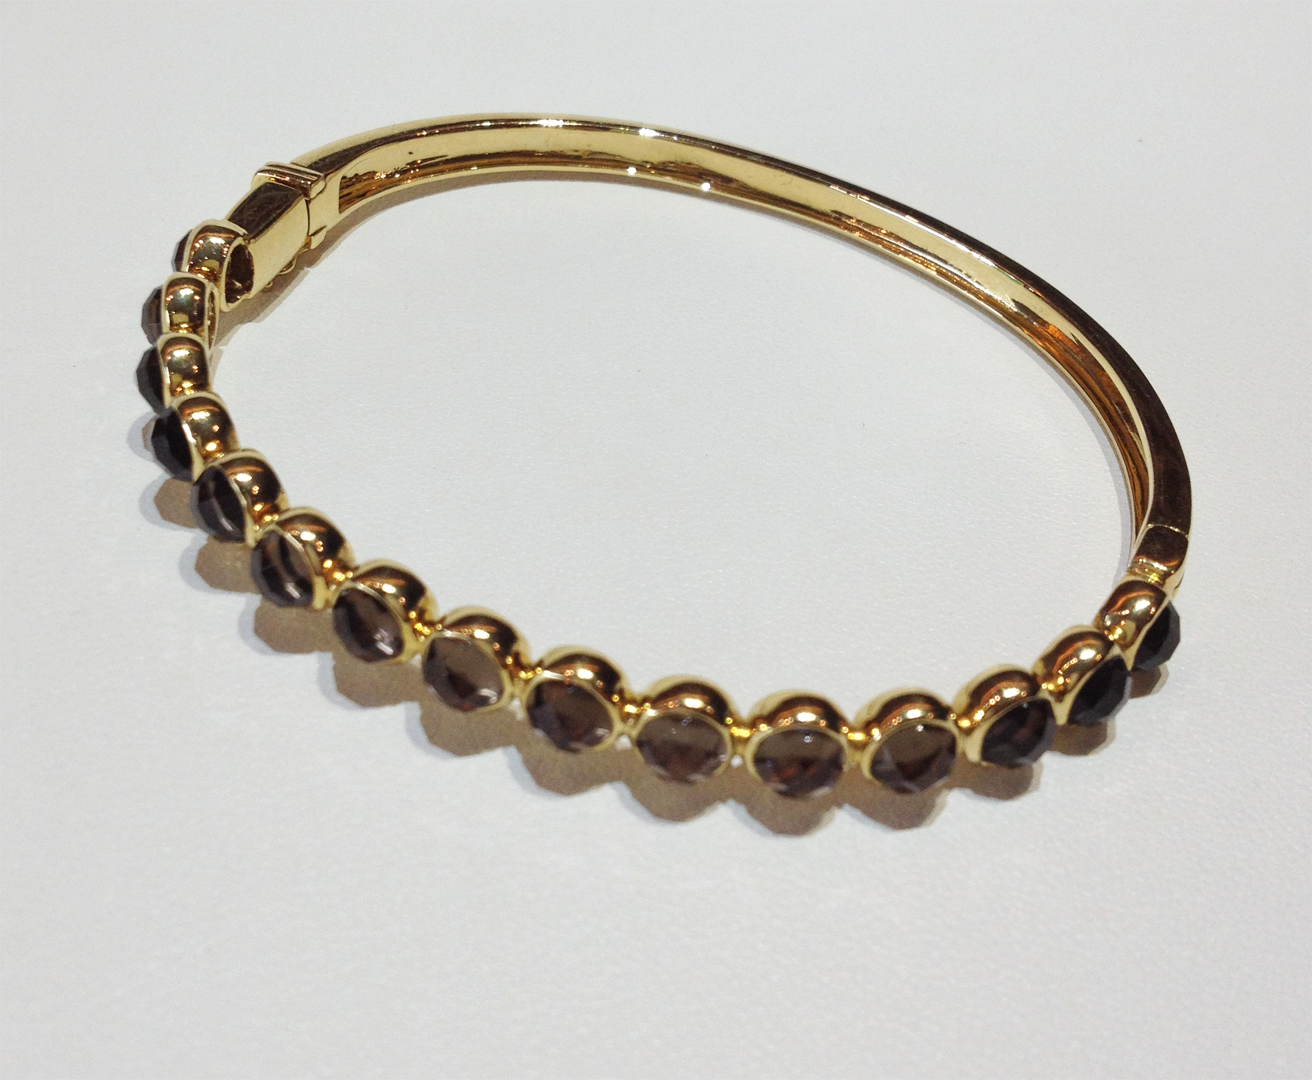 Smoky quartz and 18KT yellow gold bangle bracelet